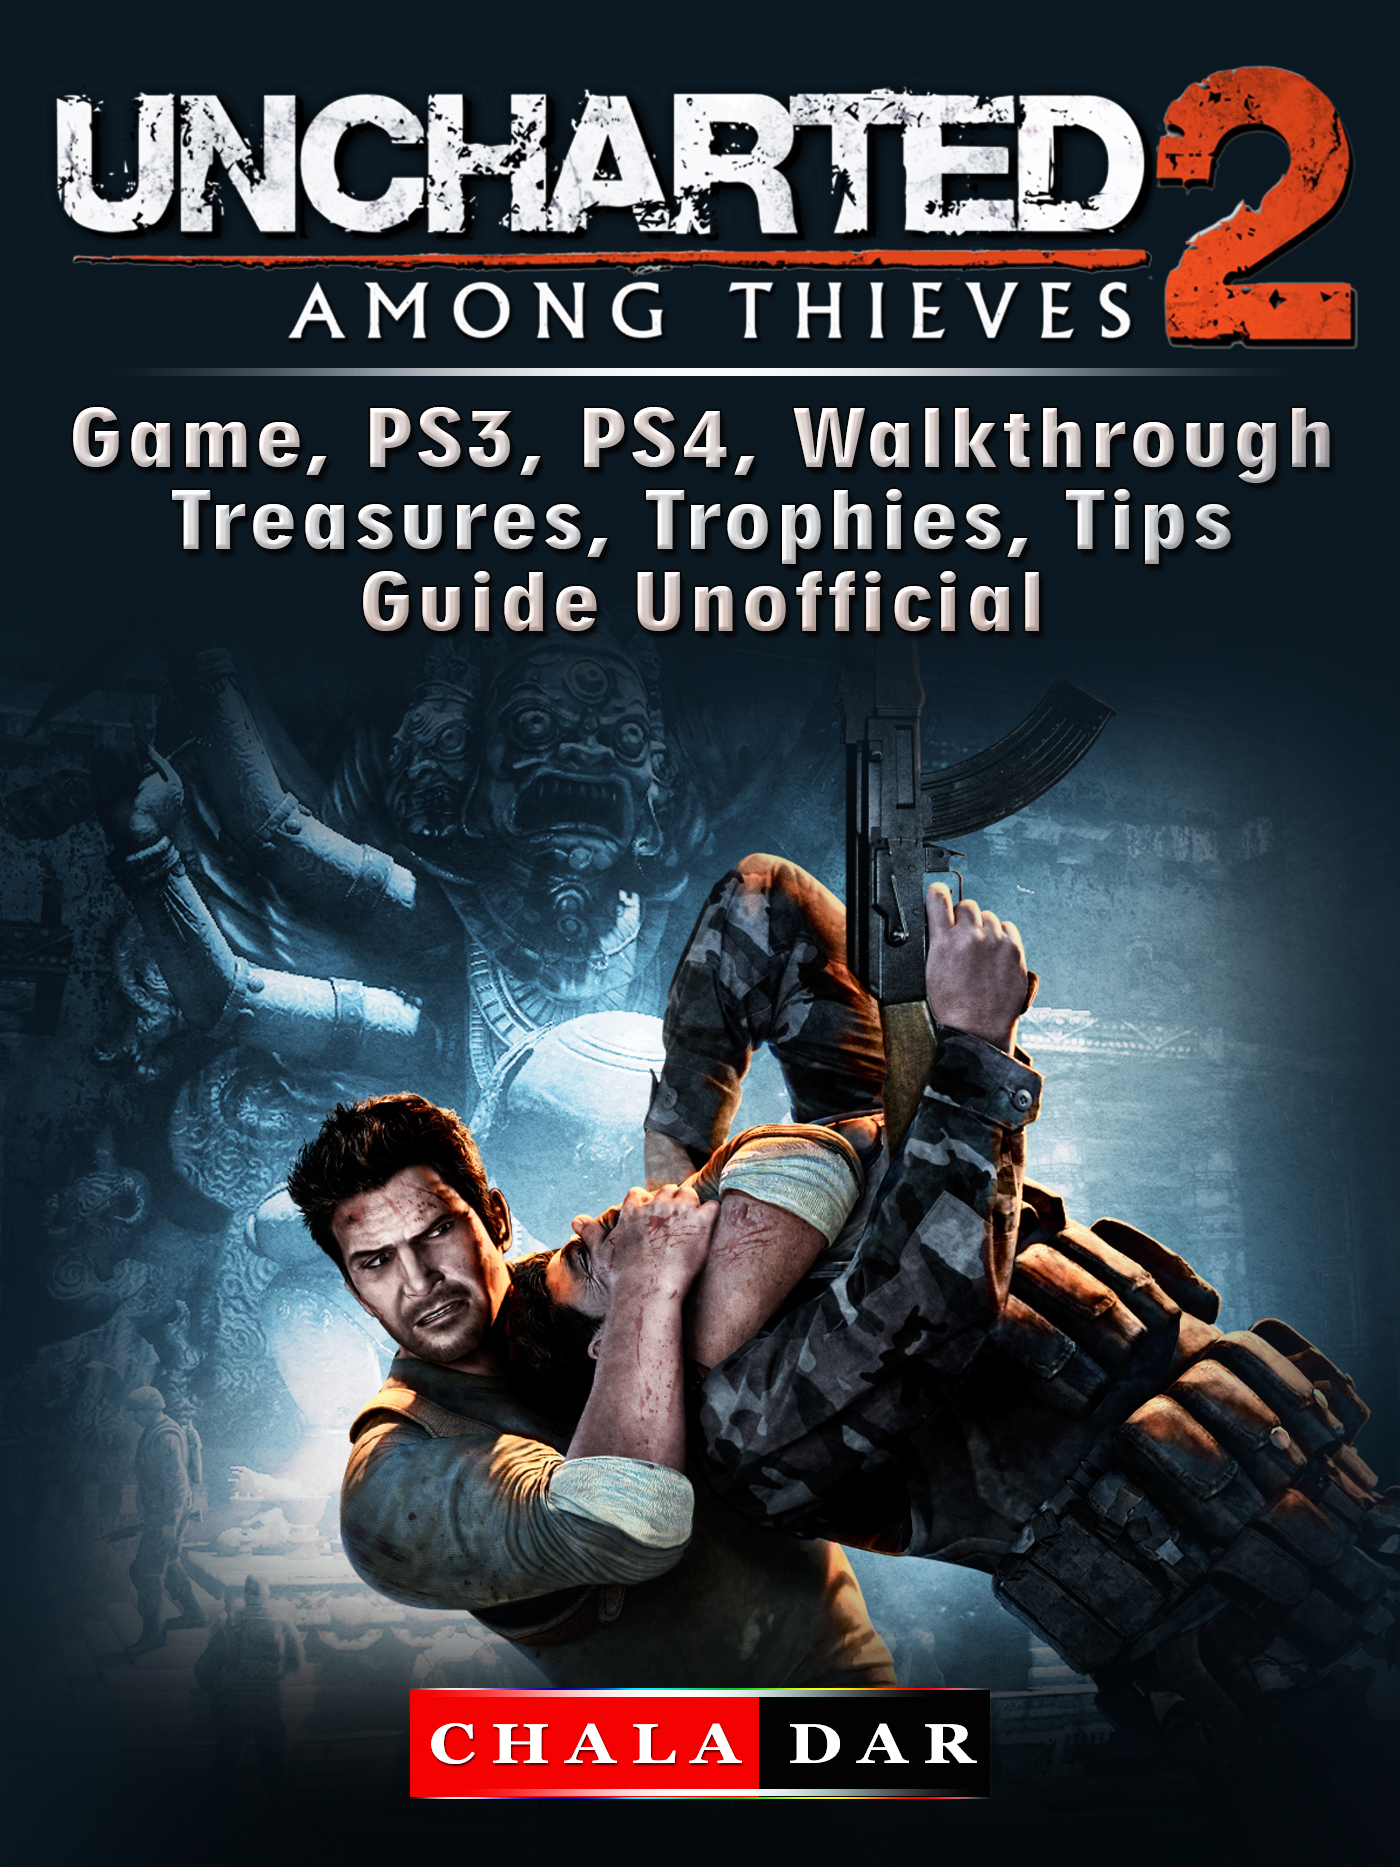 Uncharted 2 Among Thieves Game, PS3, PS4, Walkthrough, Treasures, Trophies, Tips, Guide Unofficial By Chala Dar